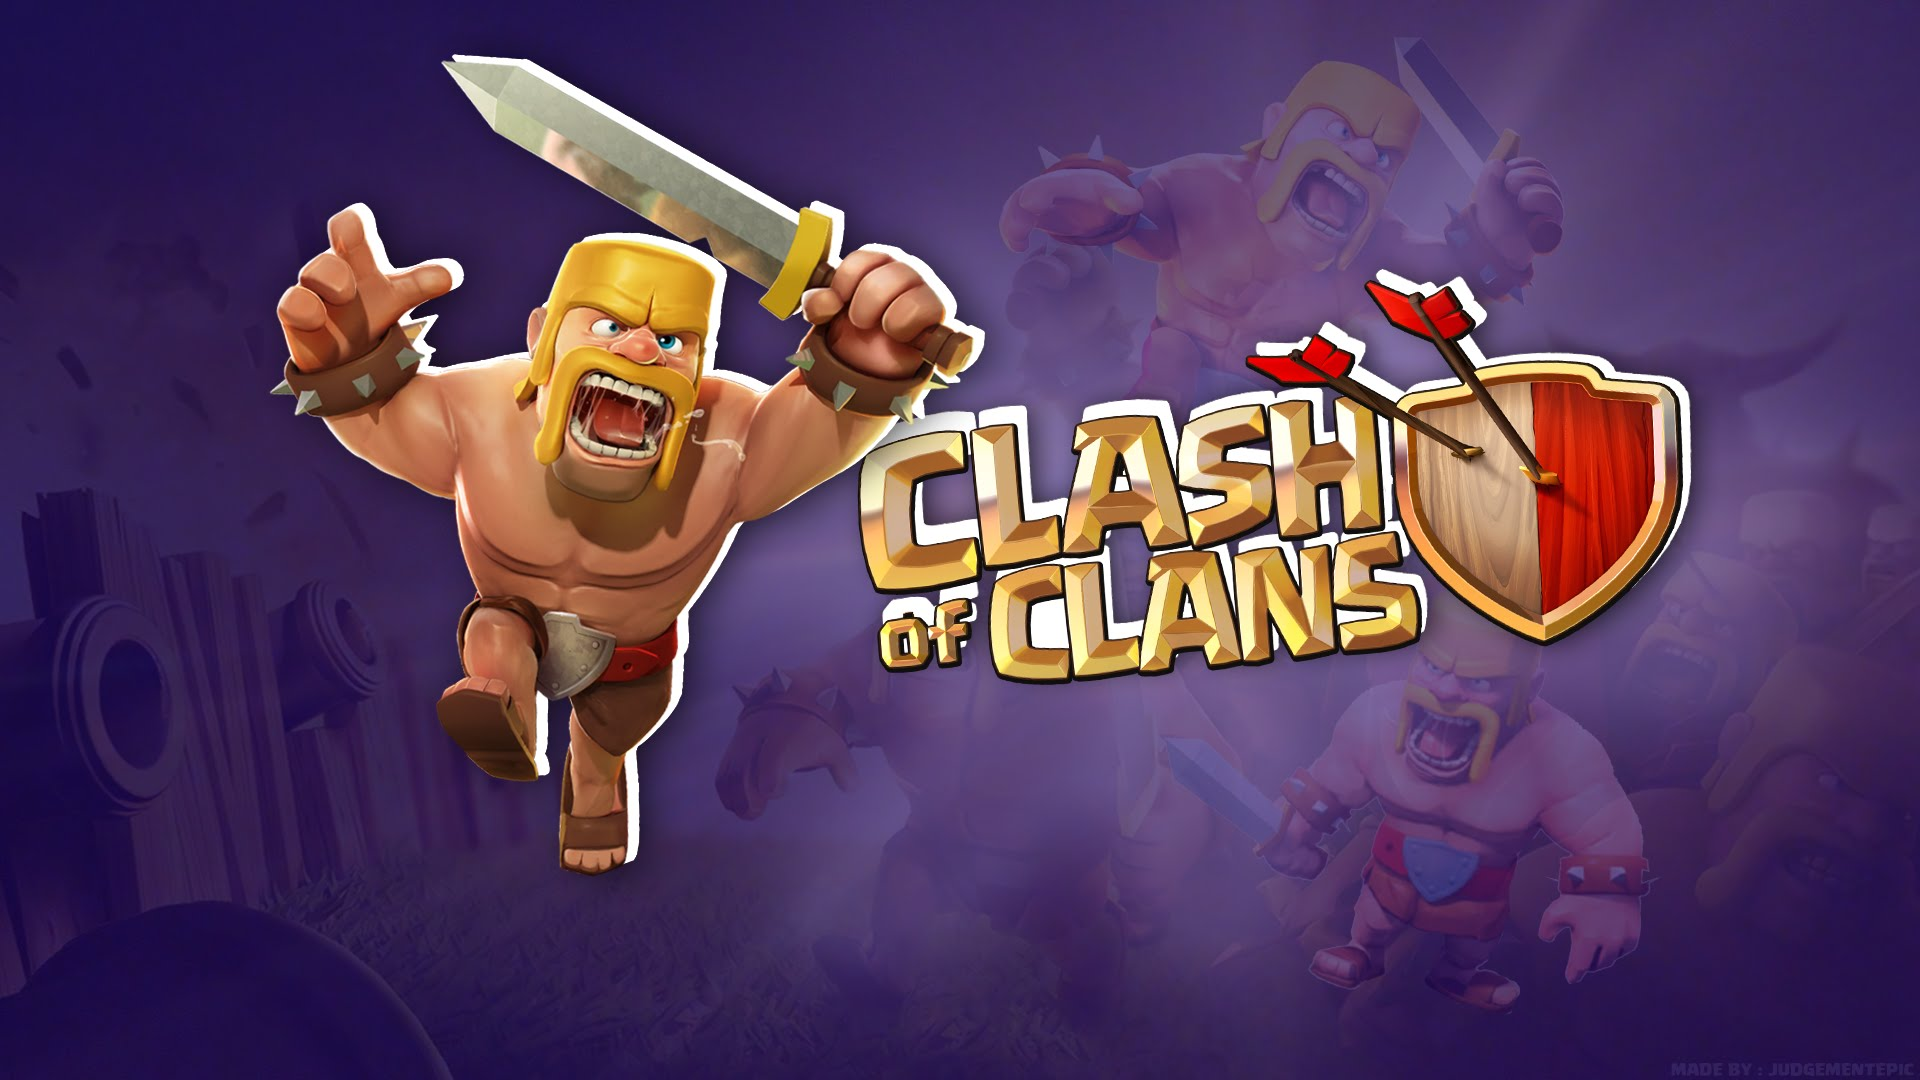 Clash Of Clans Wizard Wallpaper Abnm 1920x1080